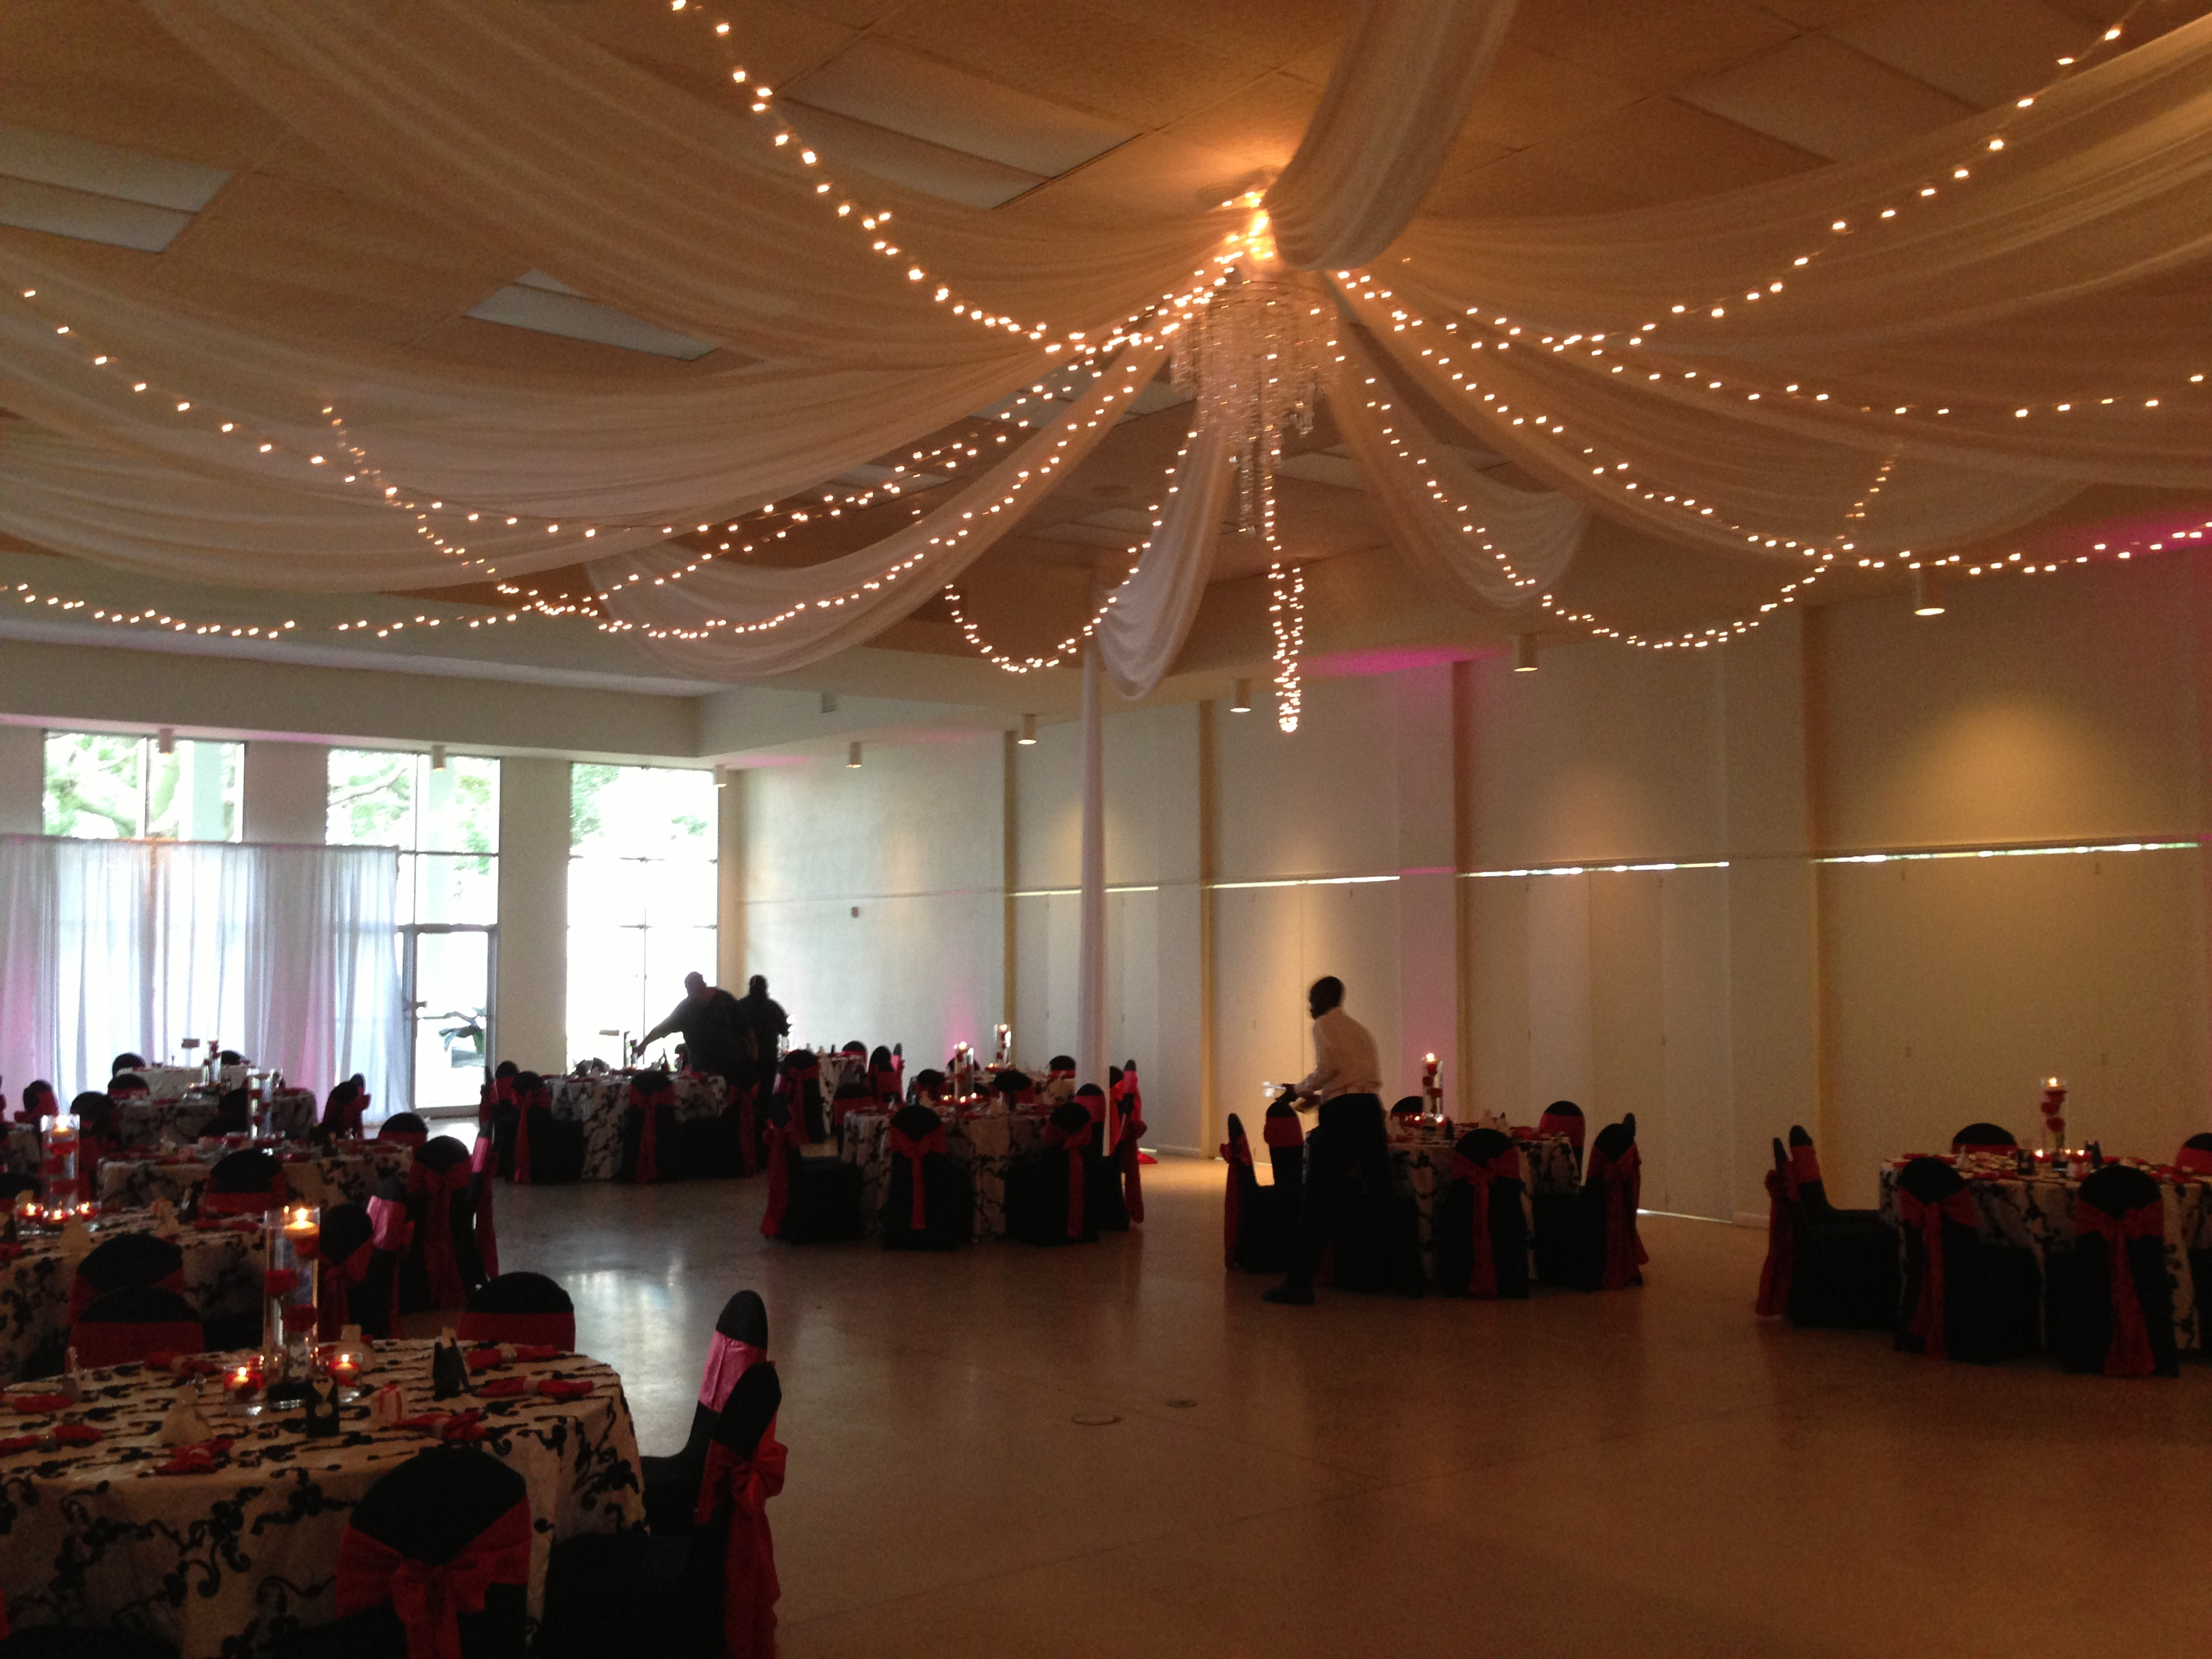 ceiling drape with twinkle lights